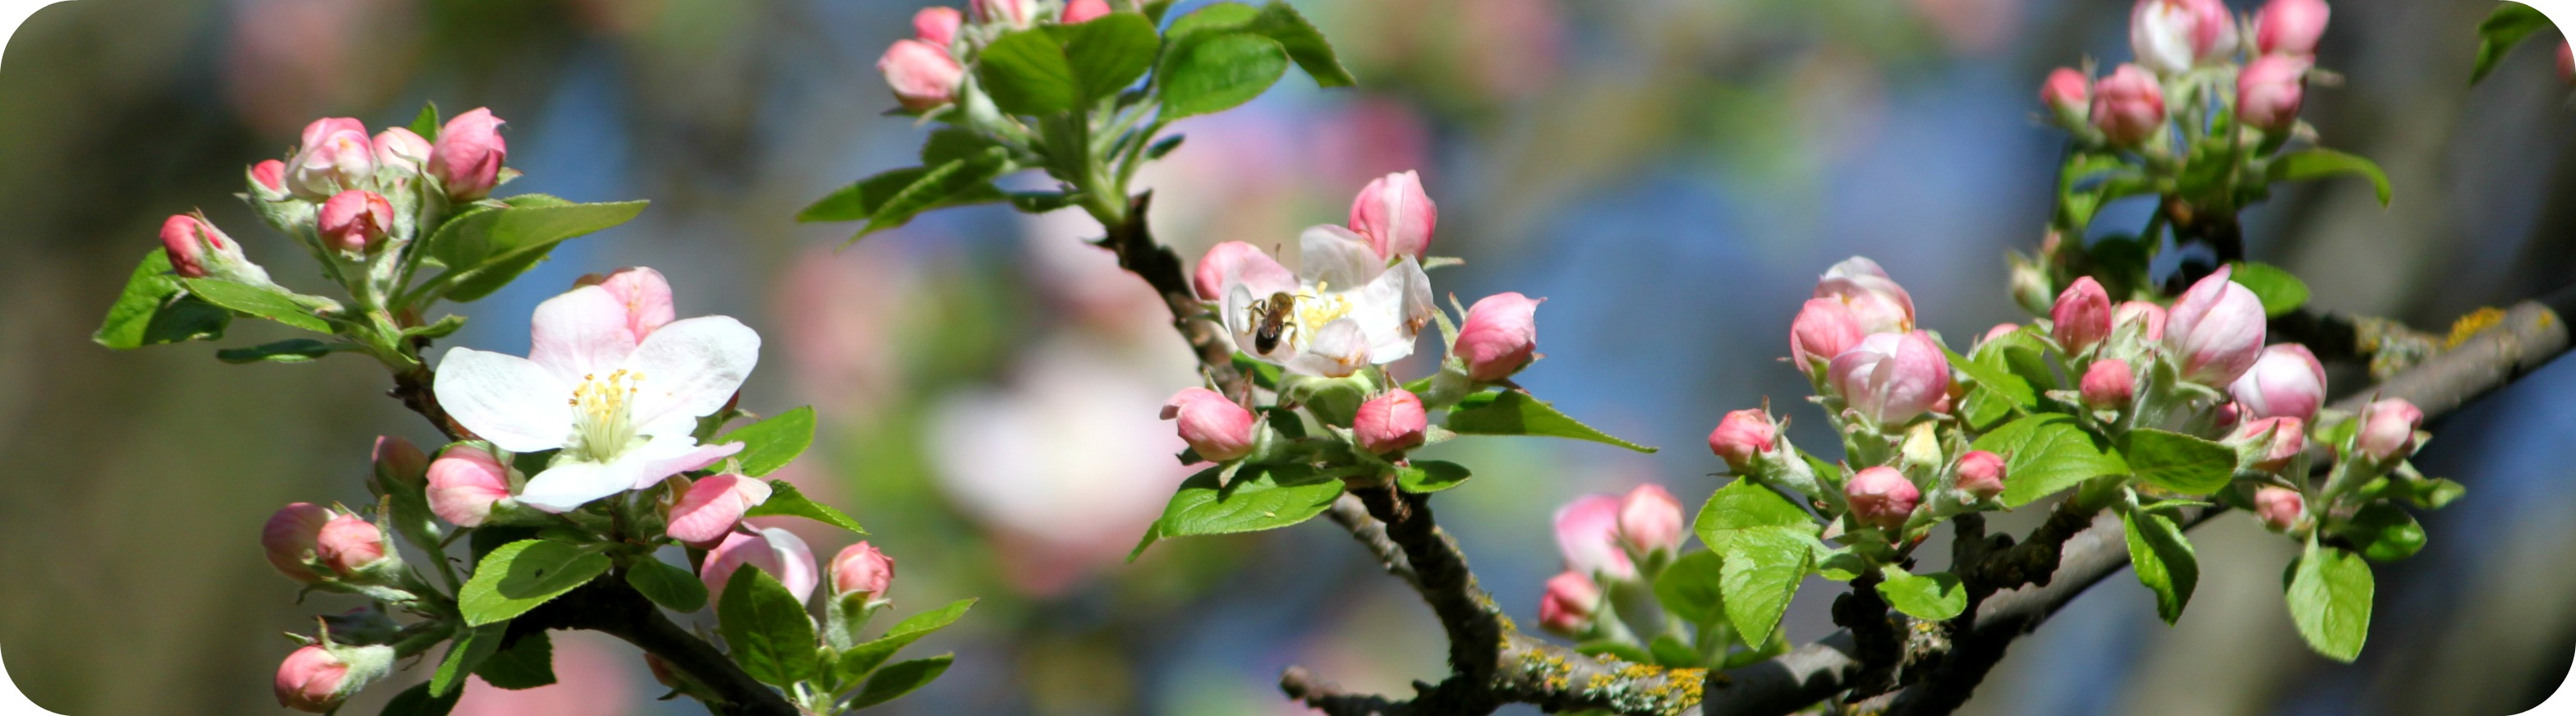 Apple Blossoms Header